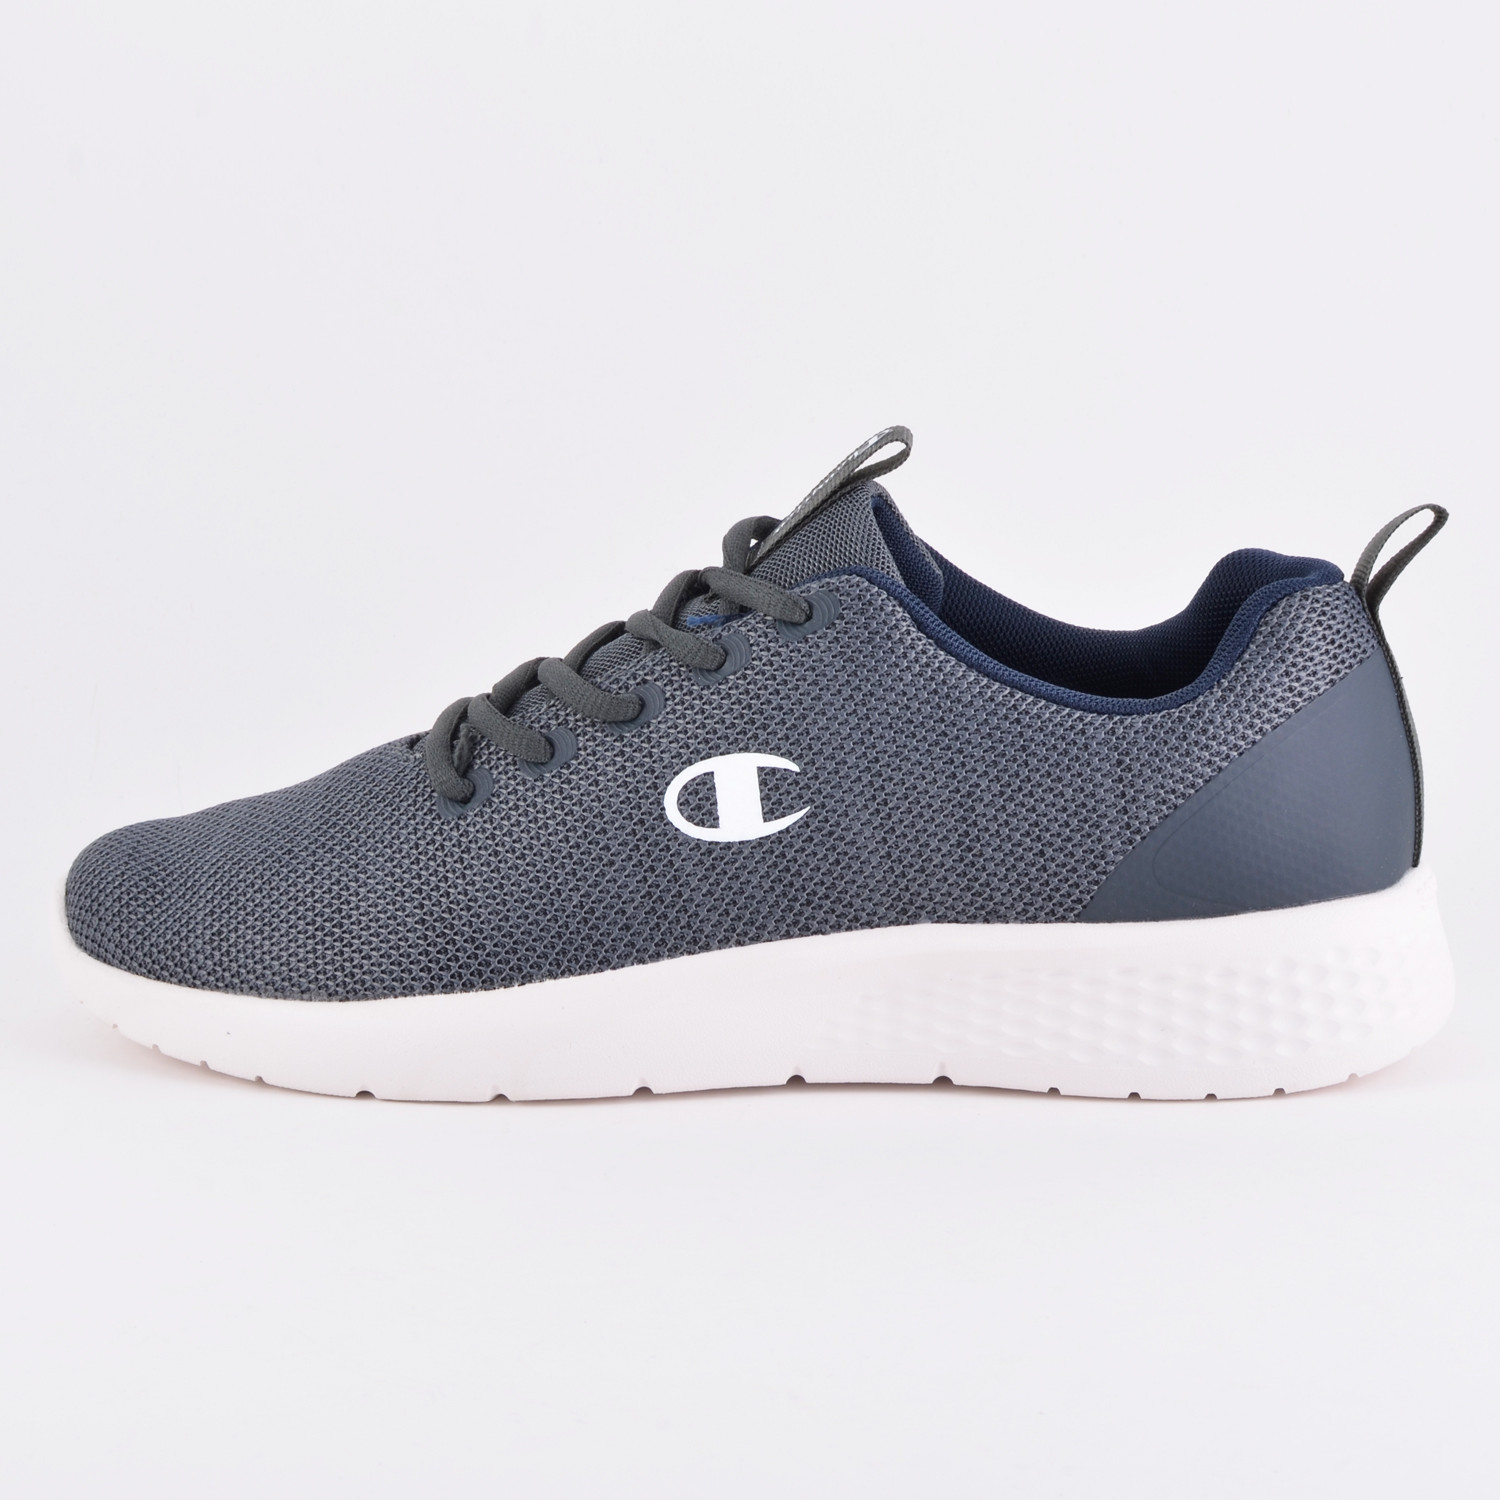 Champion Men's Low Cut Shoe Doux (9000049302_16244)